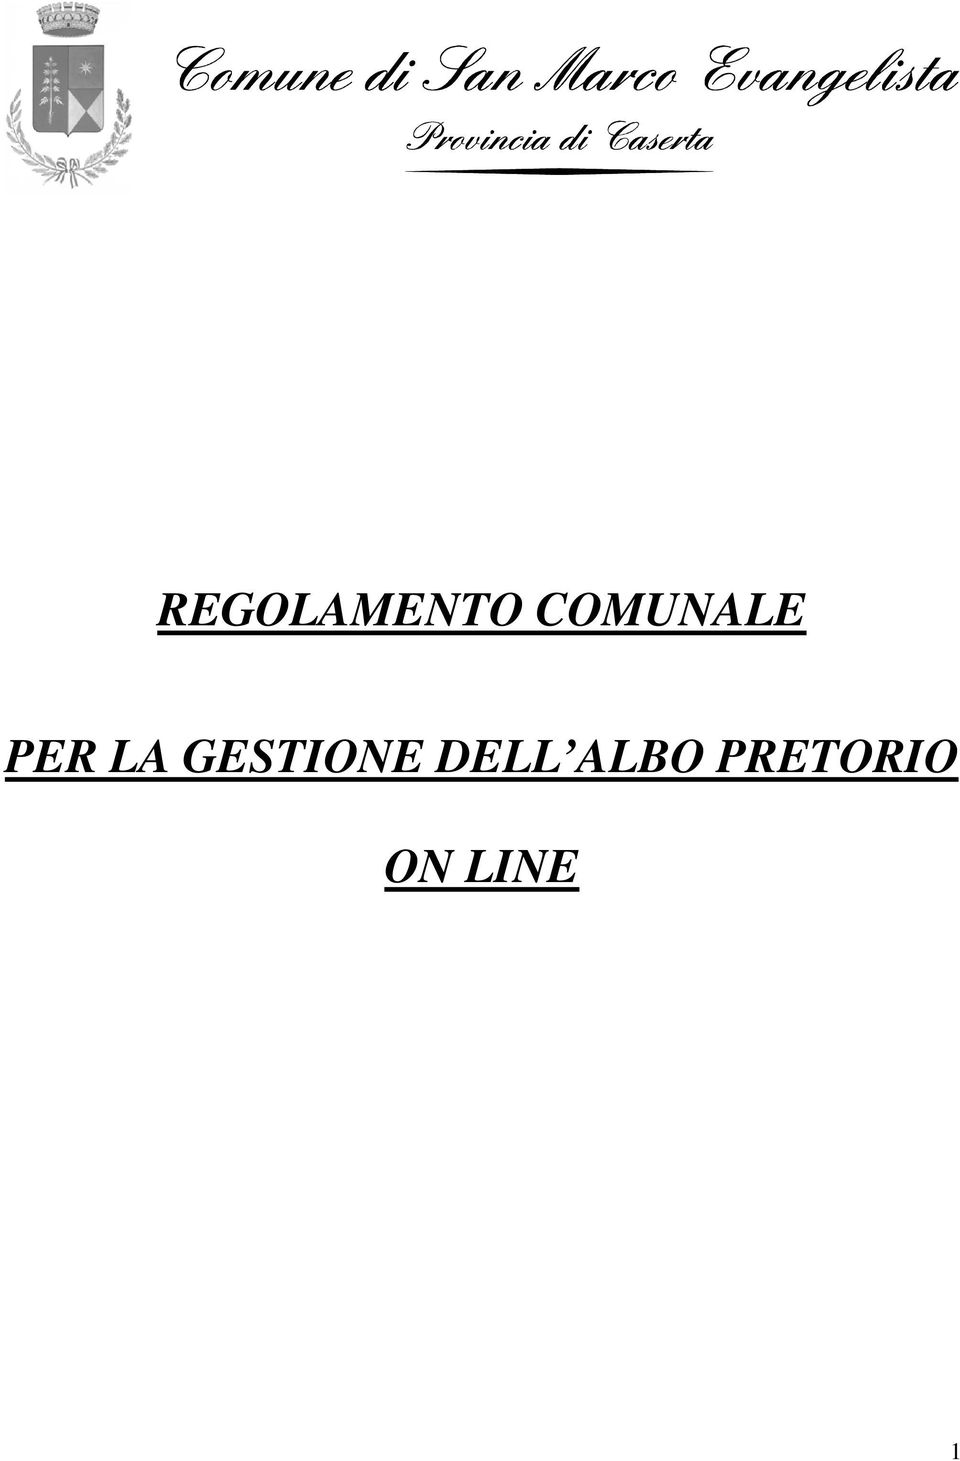 GESTIONE DELL